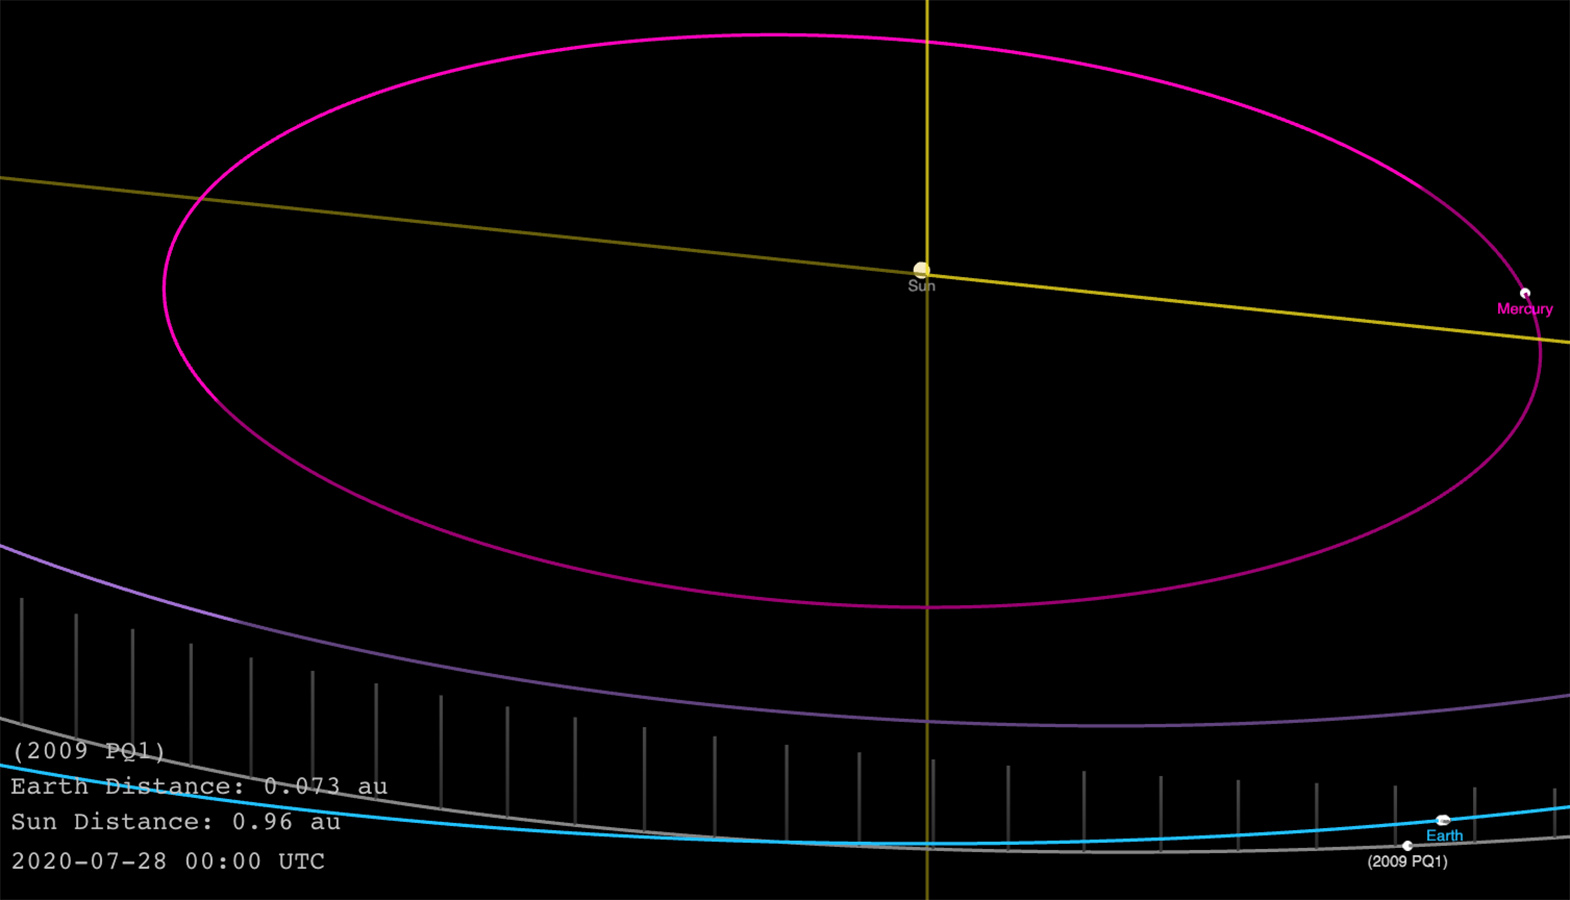 NASA Warned Of An Asteroid PQ1 Approaching Earth With A Diameter Of Up To 623.36 Feet